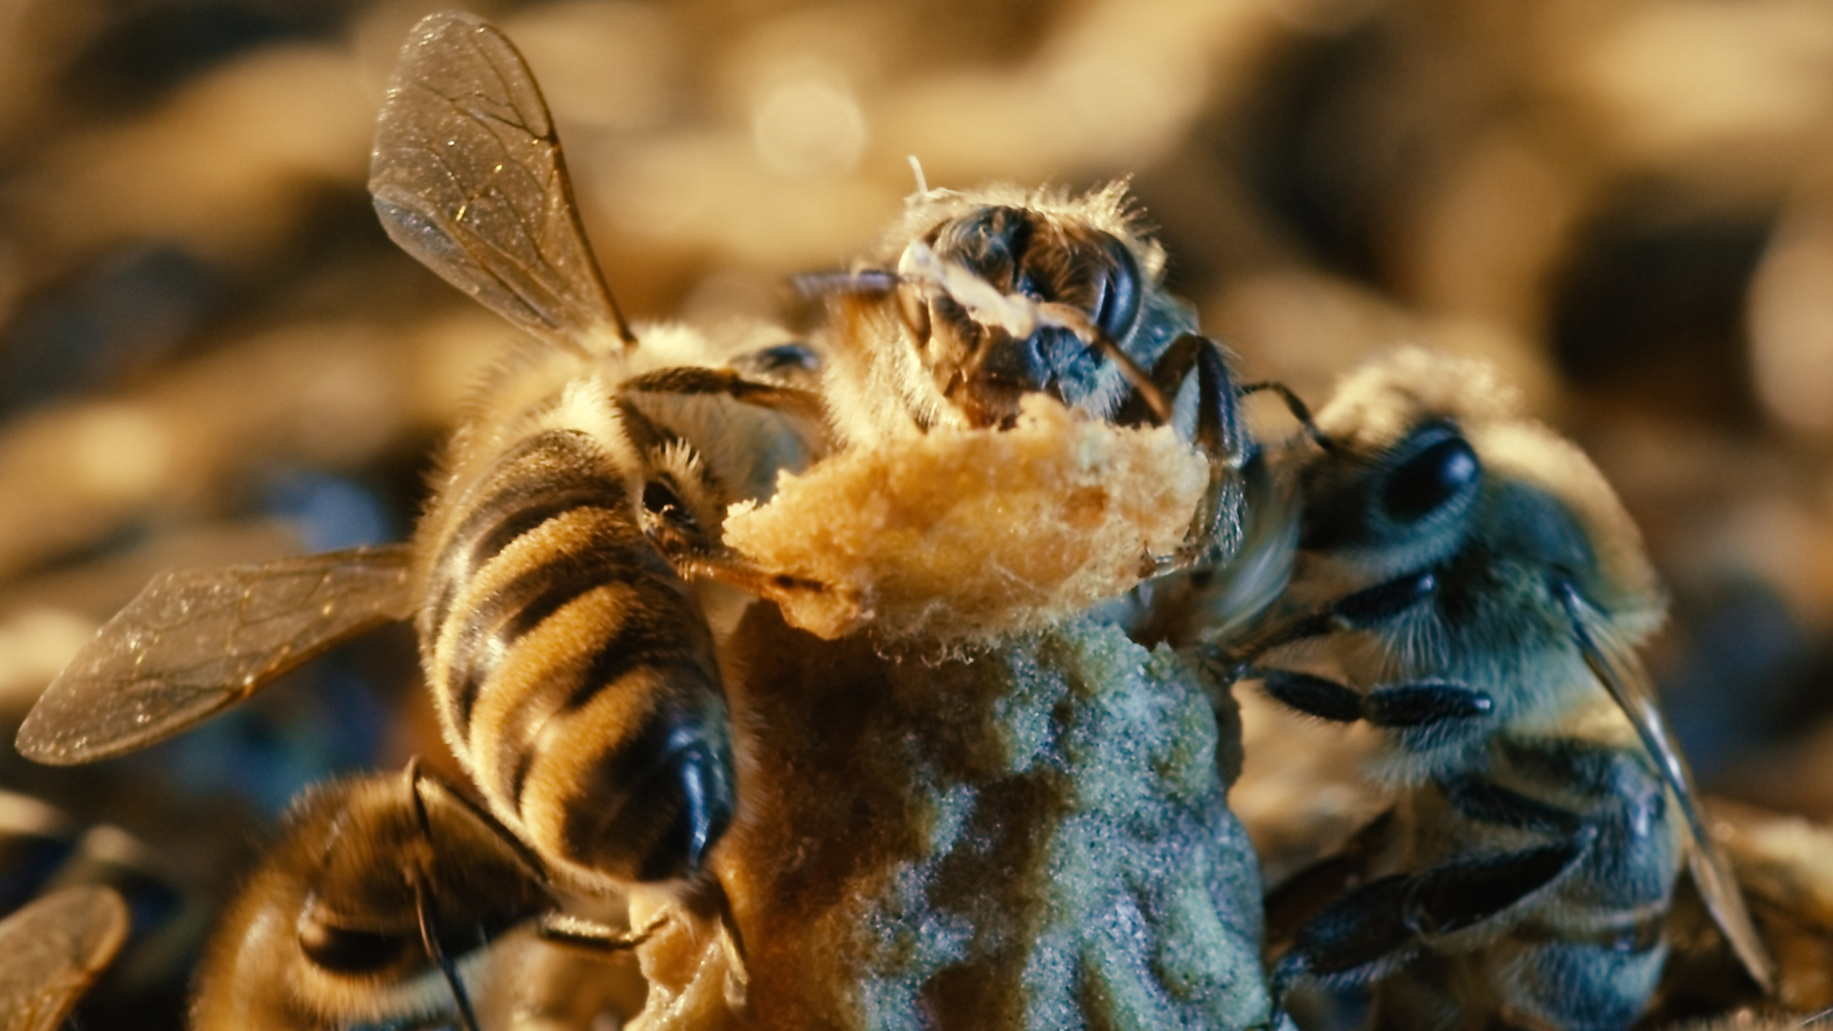 'More Than Honey' Sees A World Without Bees